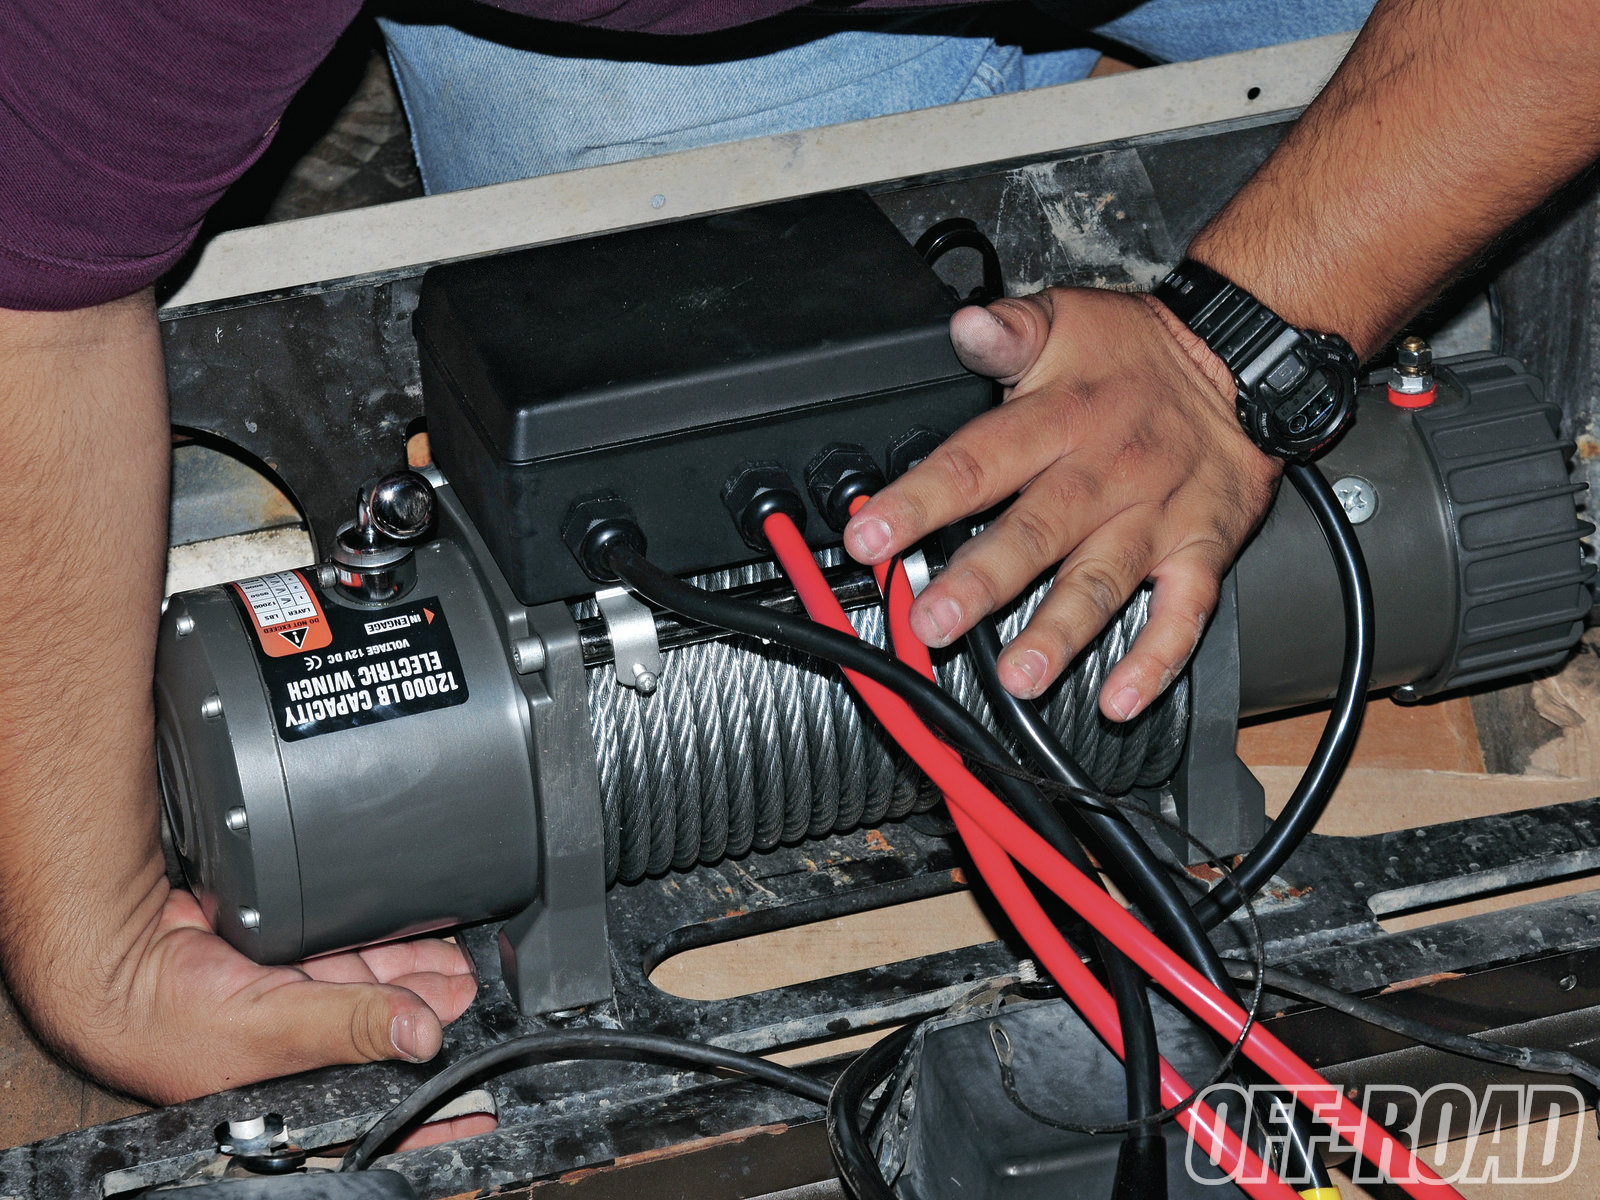 medium resolution of  winch while it s a clean setup the solenoid box can present a fitment problem if your